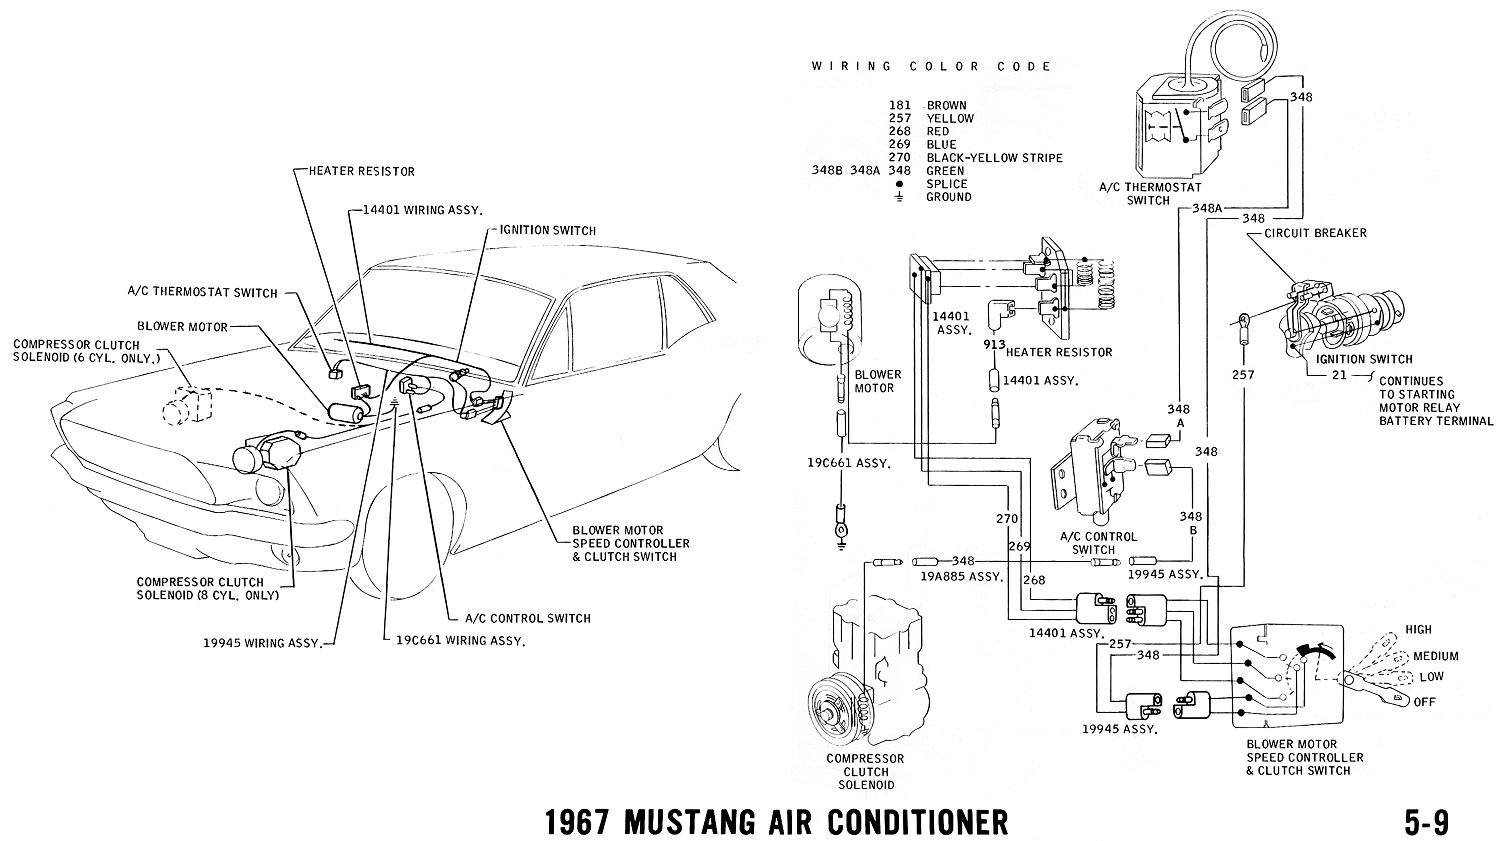 1967 Mustang Wiring And Vacuum Diagrams Average Joe Restoration Kenworth Engine Fan Solenoid Diagram Pictorial Schematic